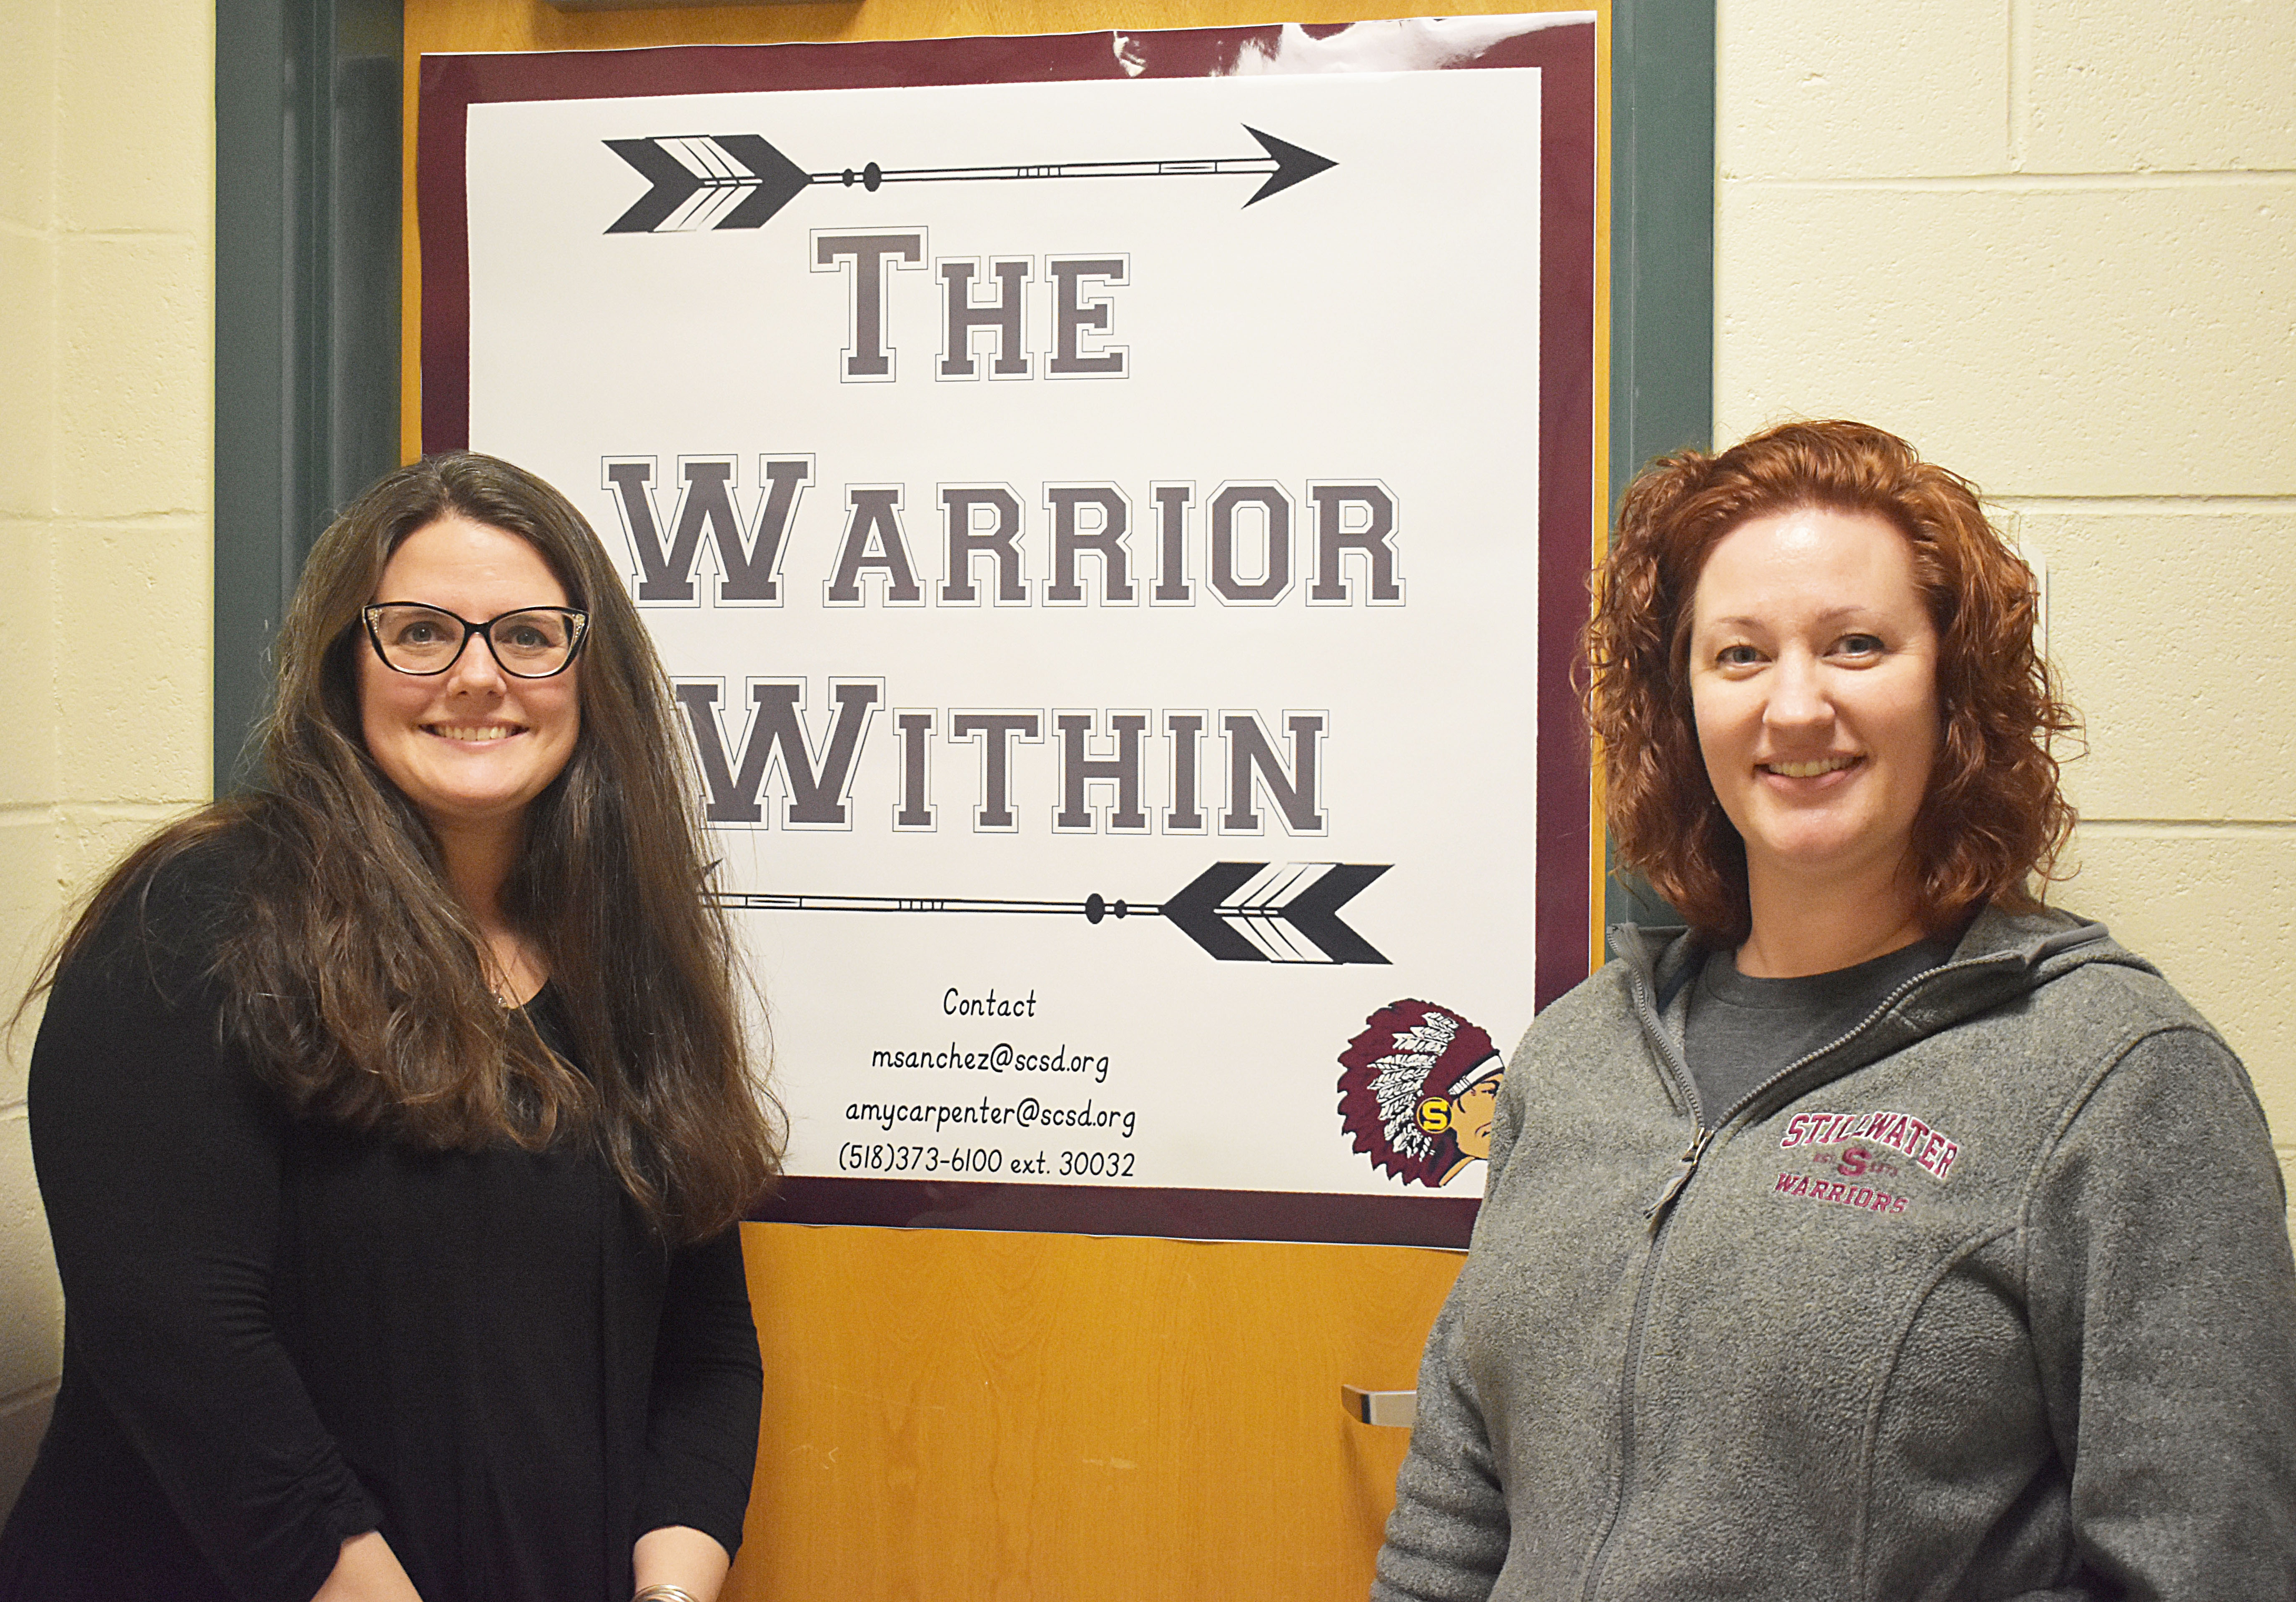 Librarian Amy Carpenter and Library Aide Megan Sanchez stand in front of Warrior Within sign